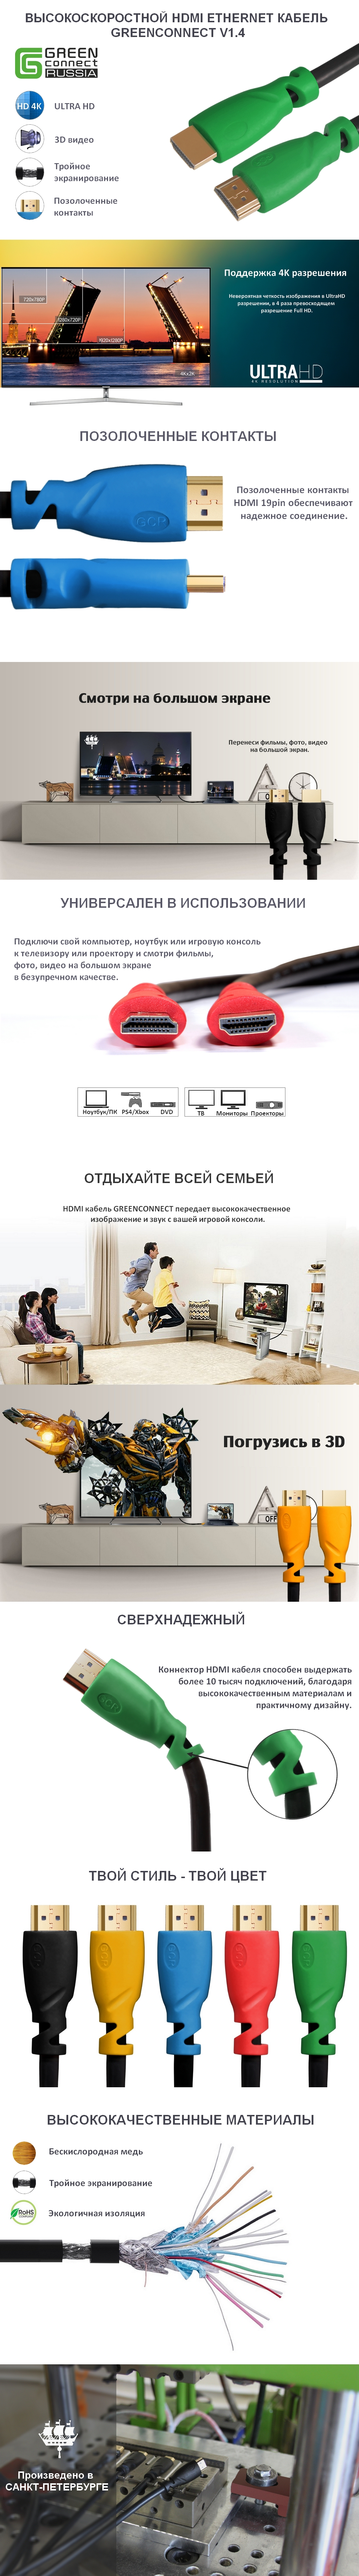 Кабель HDMI v1.4 GCR для PS4 24K GOLD Full HD 4K